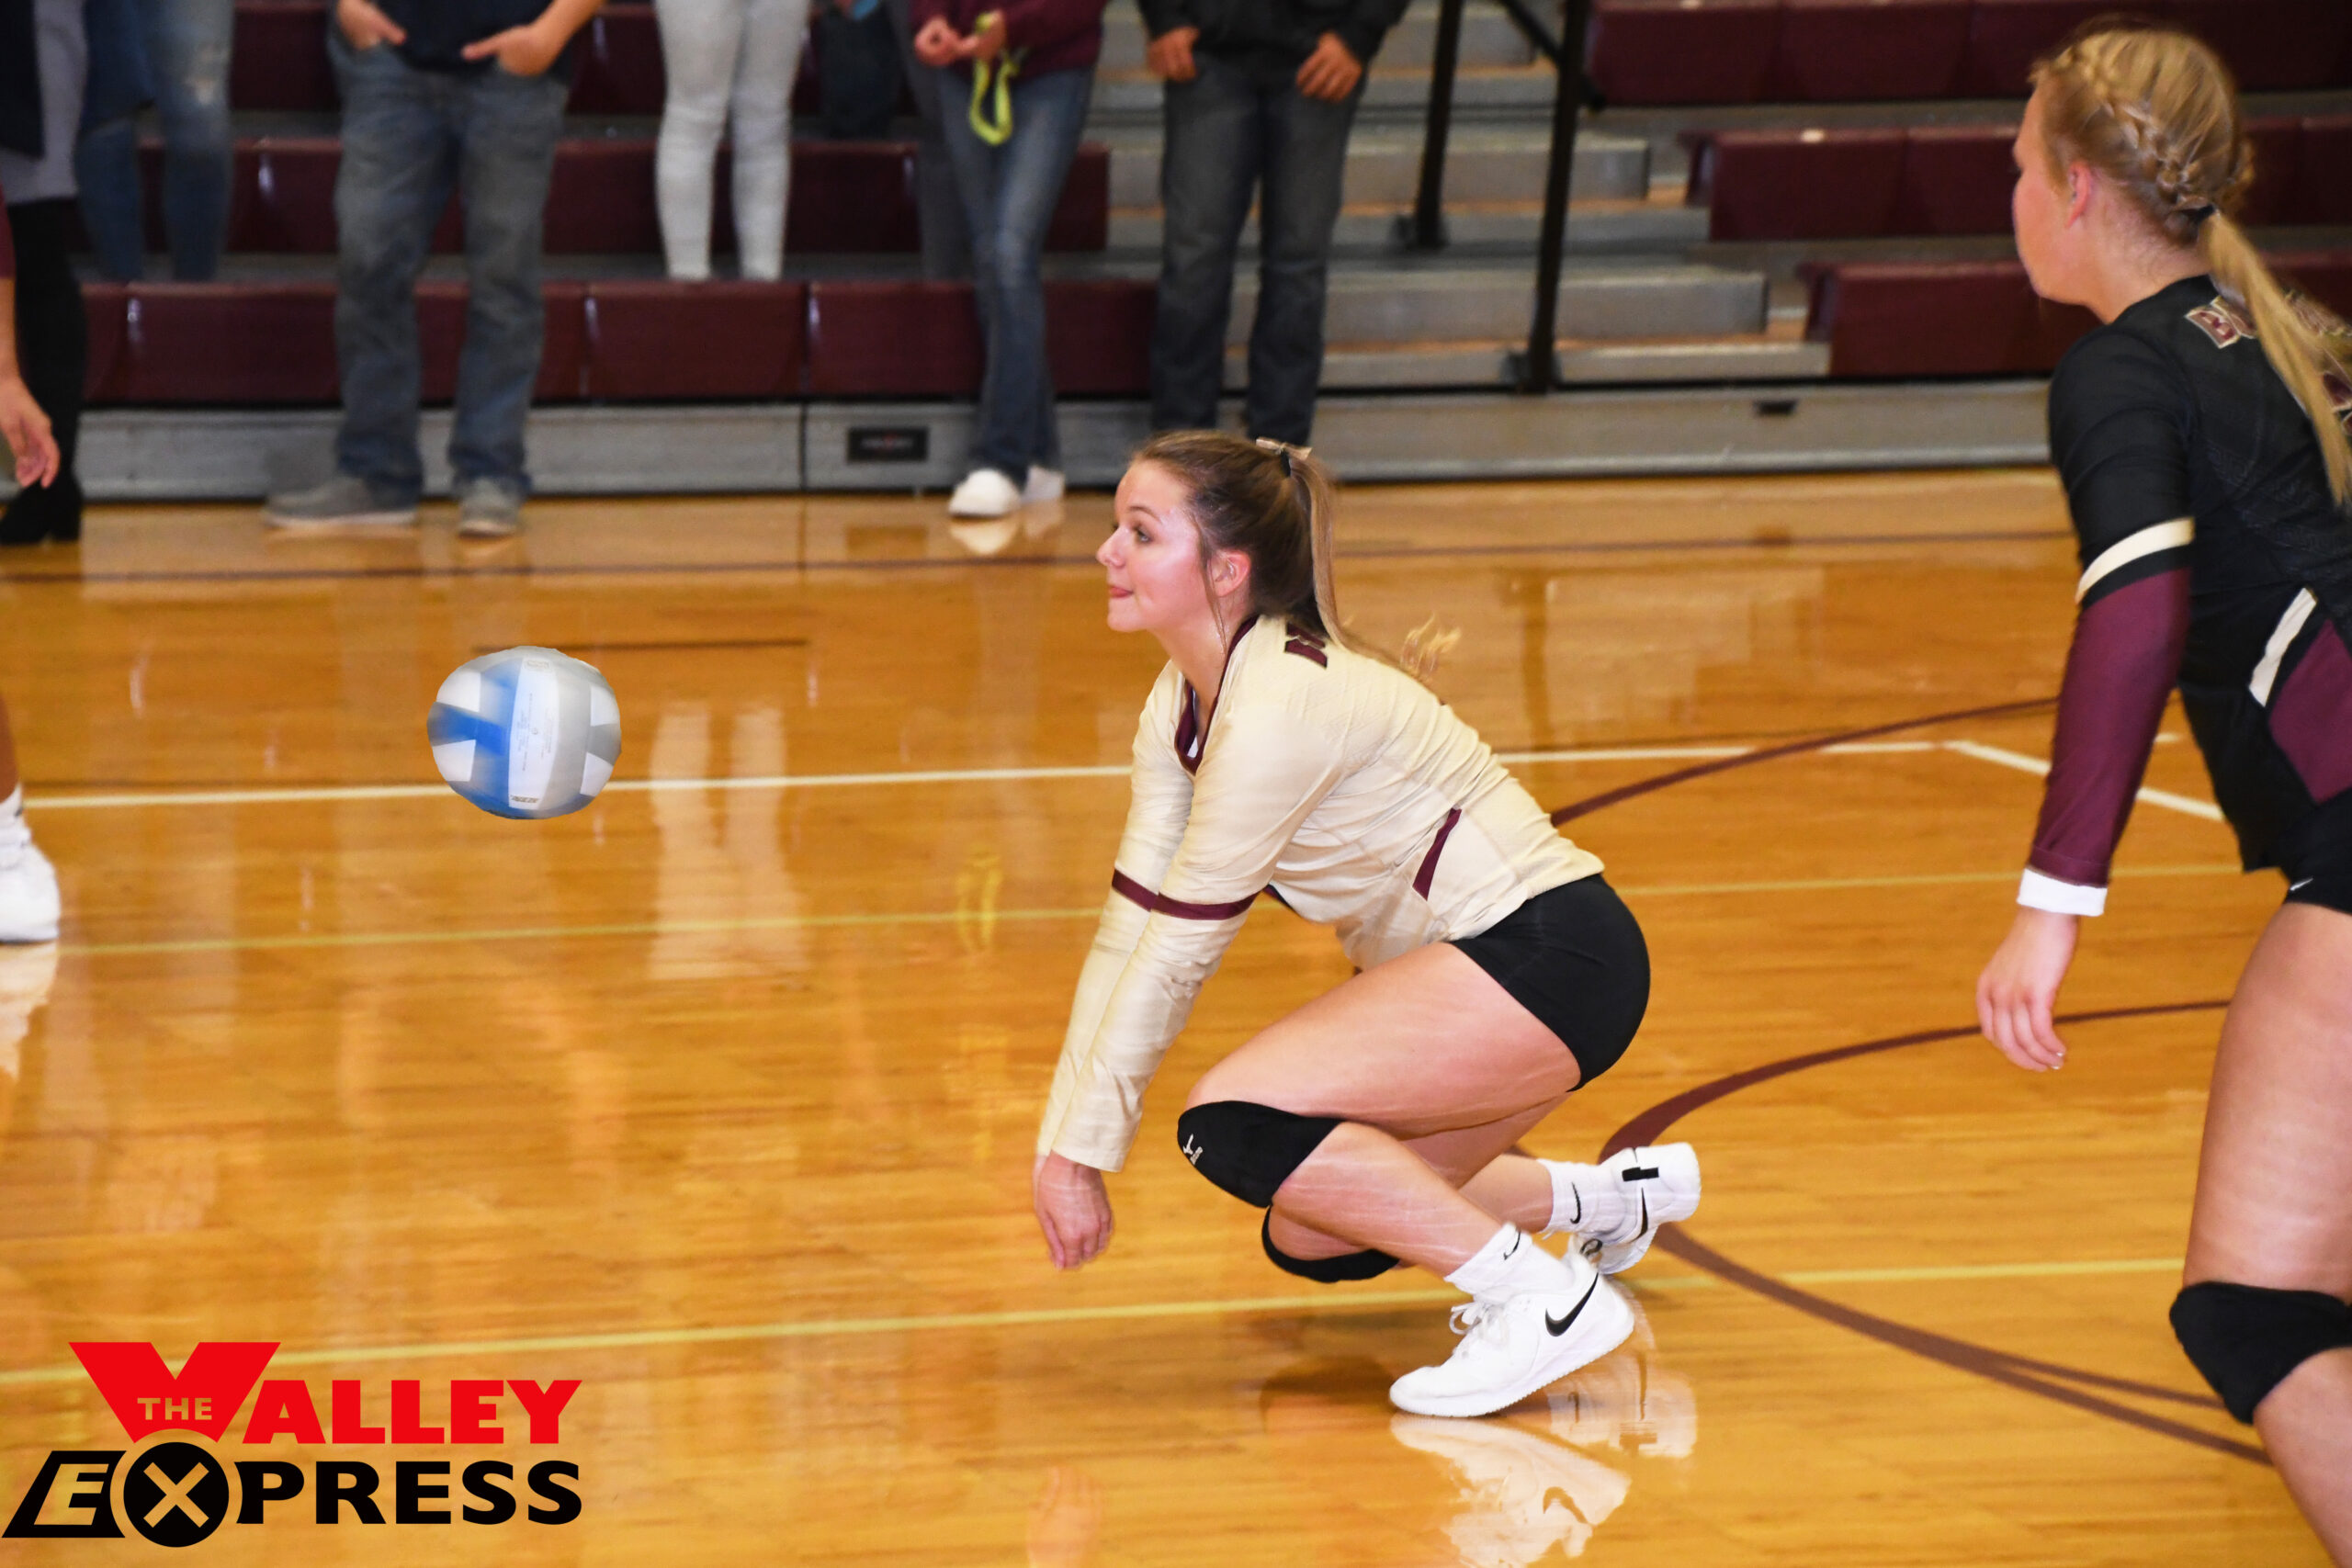 Schulte Tallies Season-High of 30 Digs for Lady Bulldogs